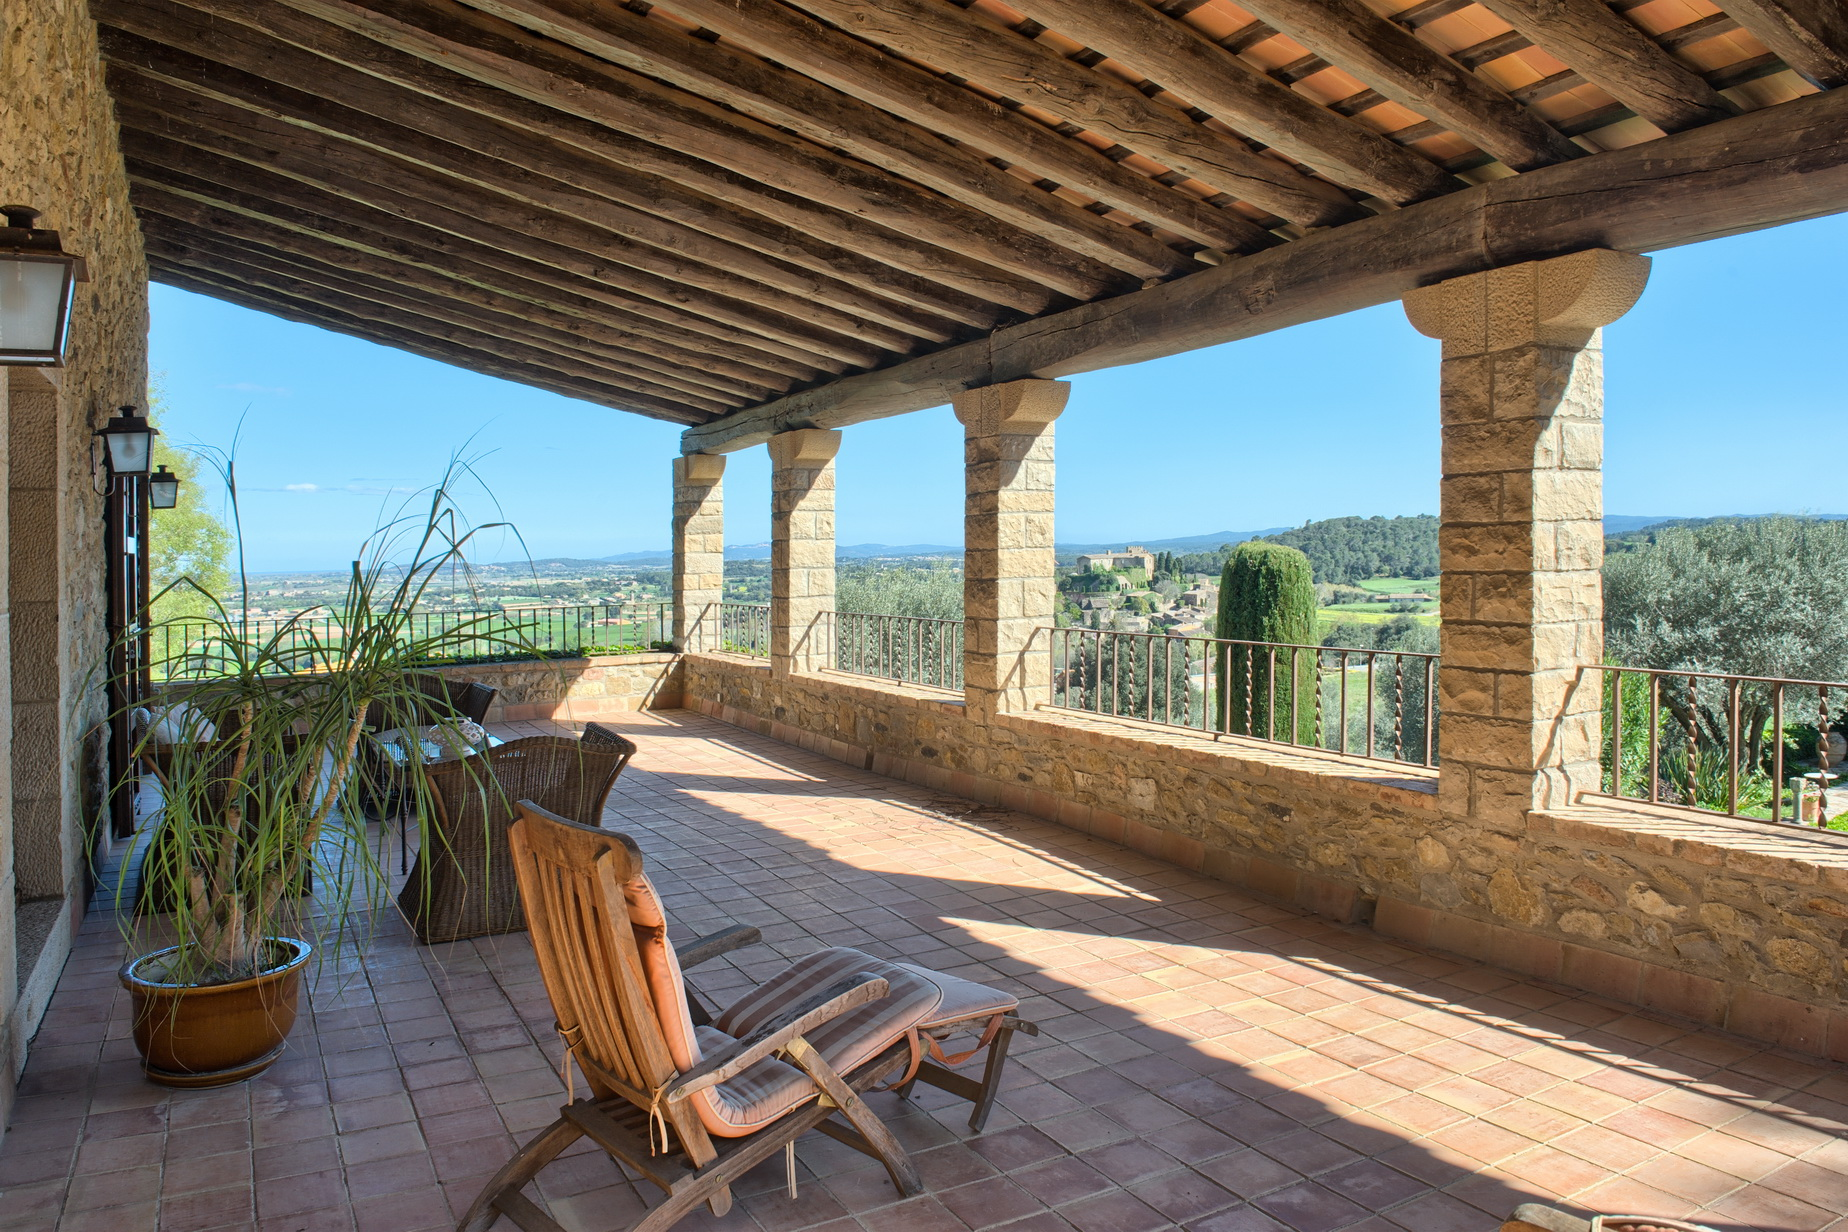 Maison unifamiliale pour l Vente à Beautiful rustic style estate in the centre of Foixa with stunning views Other Cities Baix Emporda, Barcelona, 17001 Espagne